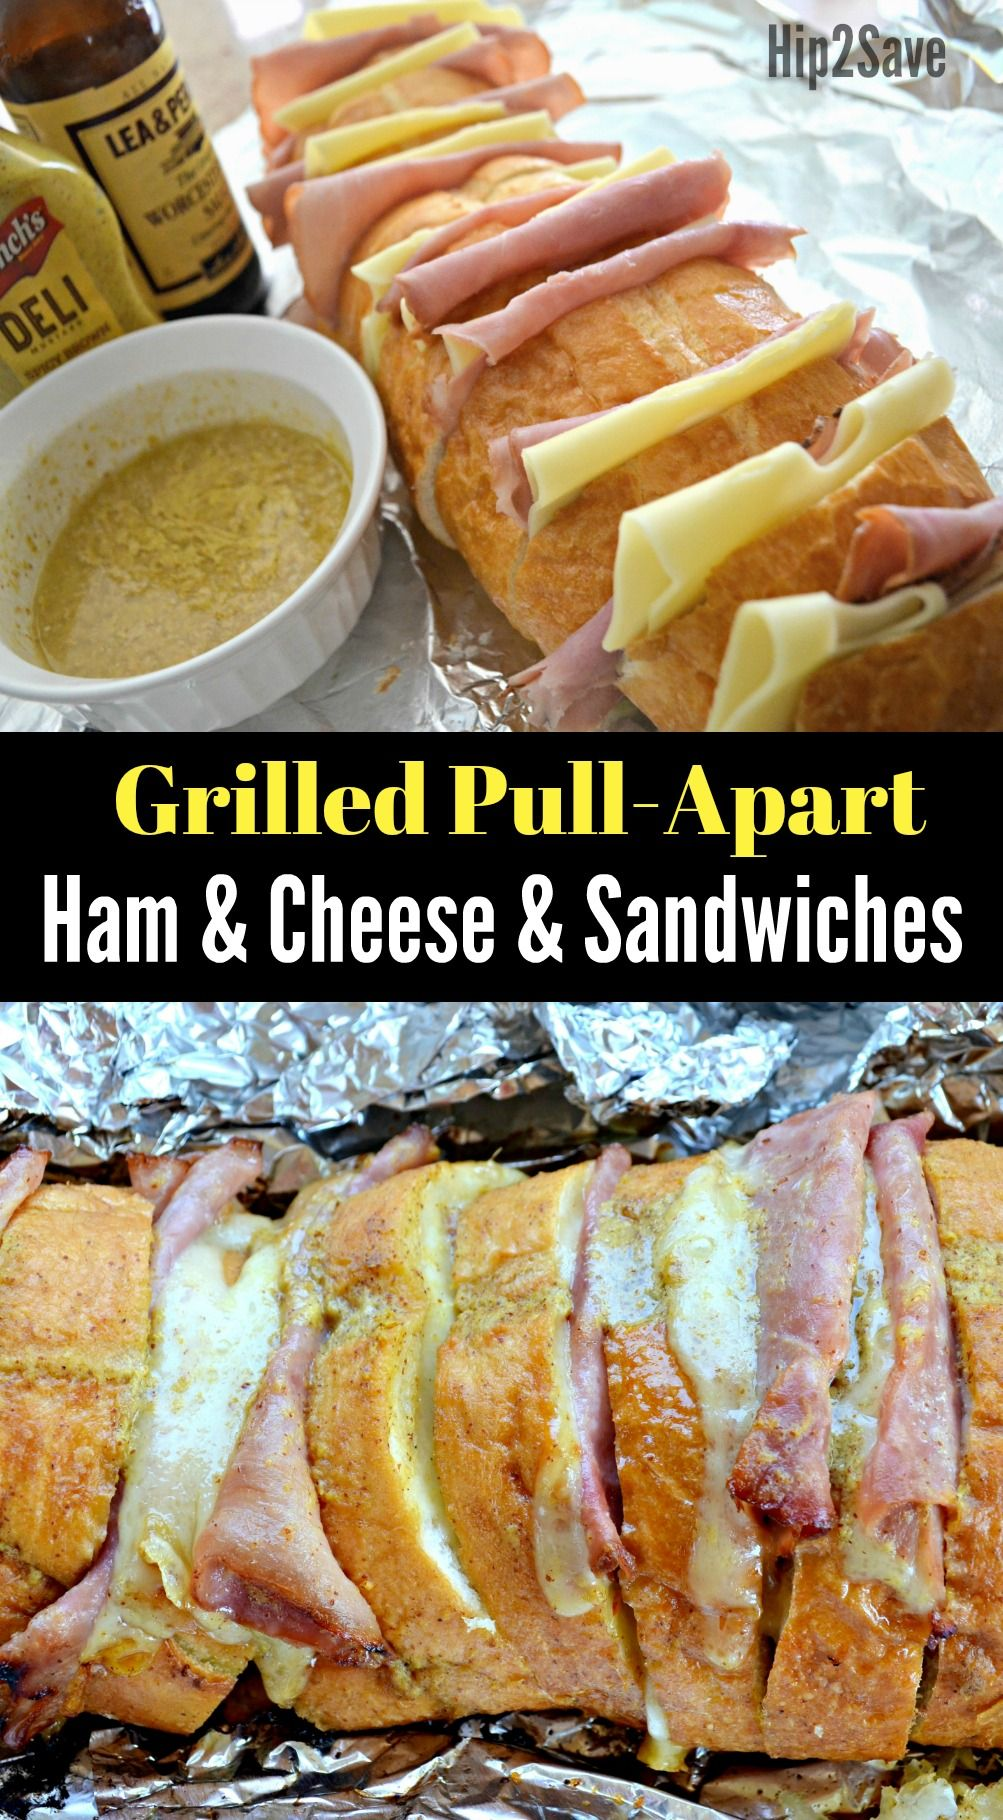 Grilled Ham & Cheese Pull-Apart Sandwiches #campingideas